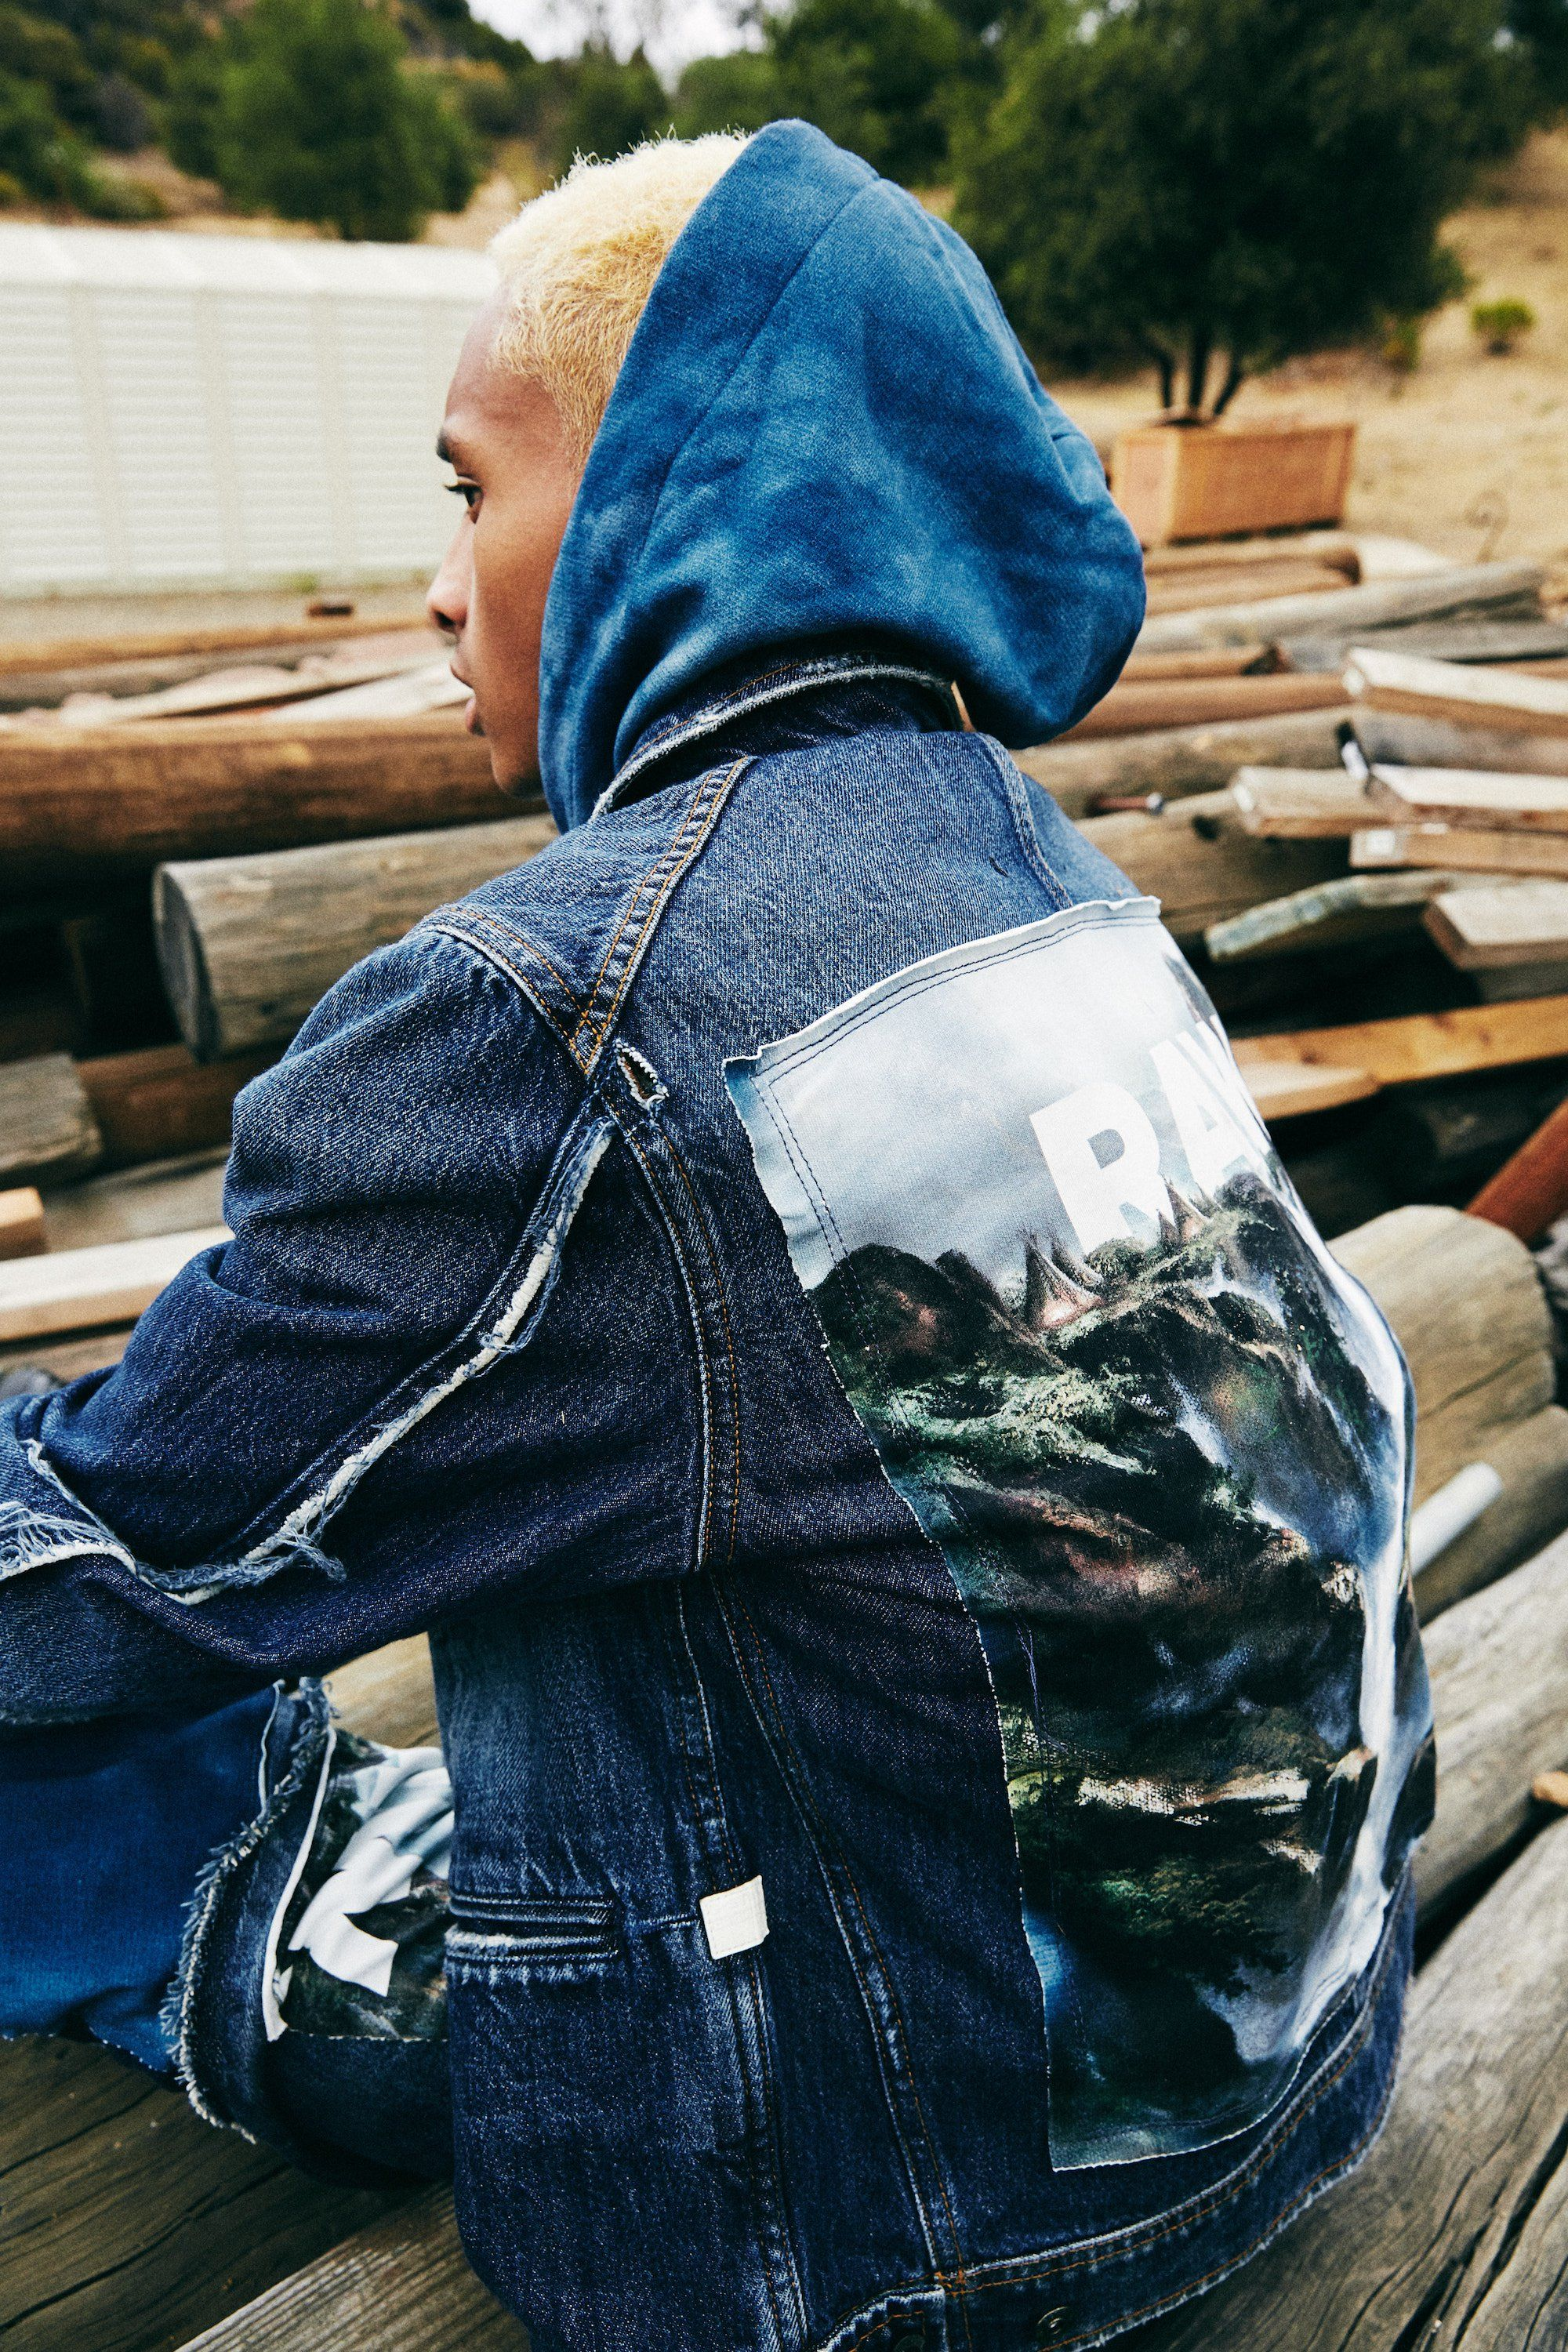 G Star RAW x Jaden Smith: Forces Of Nature | Denim street